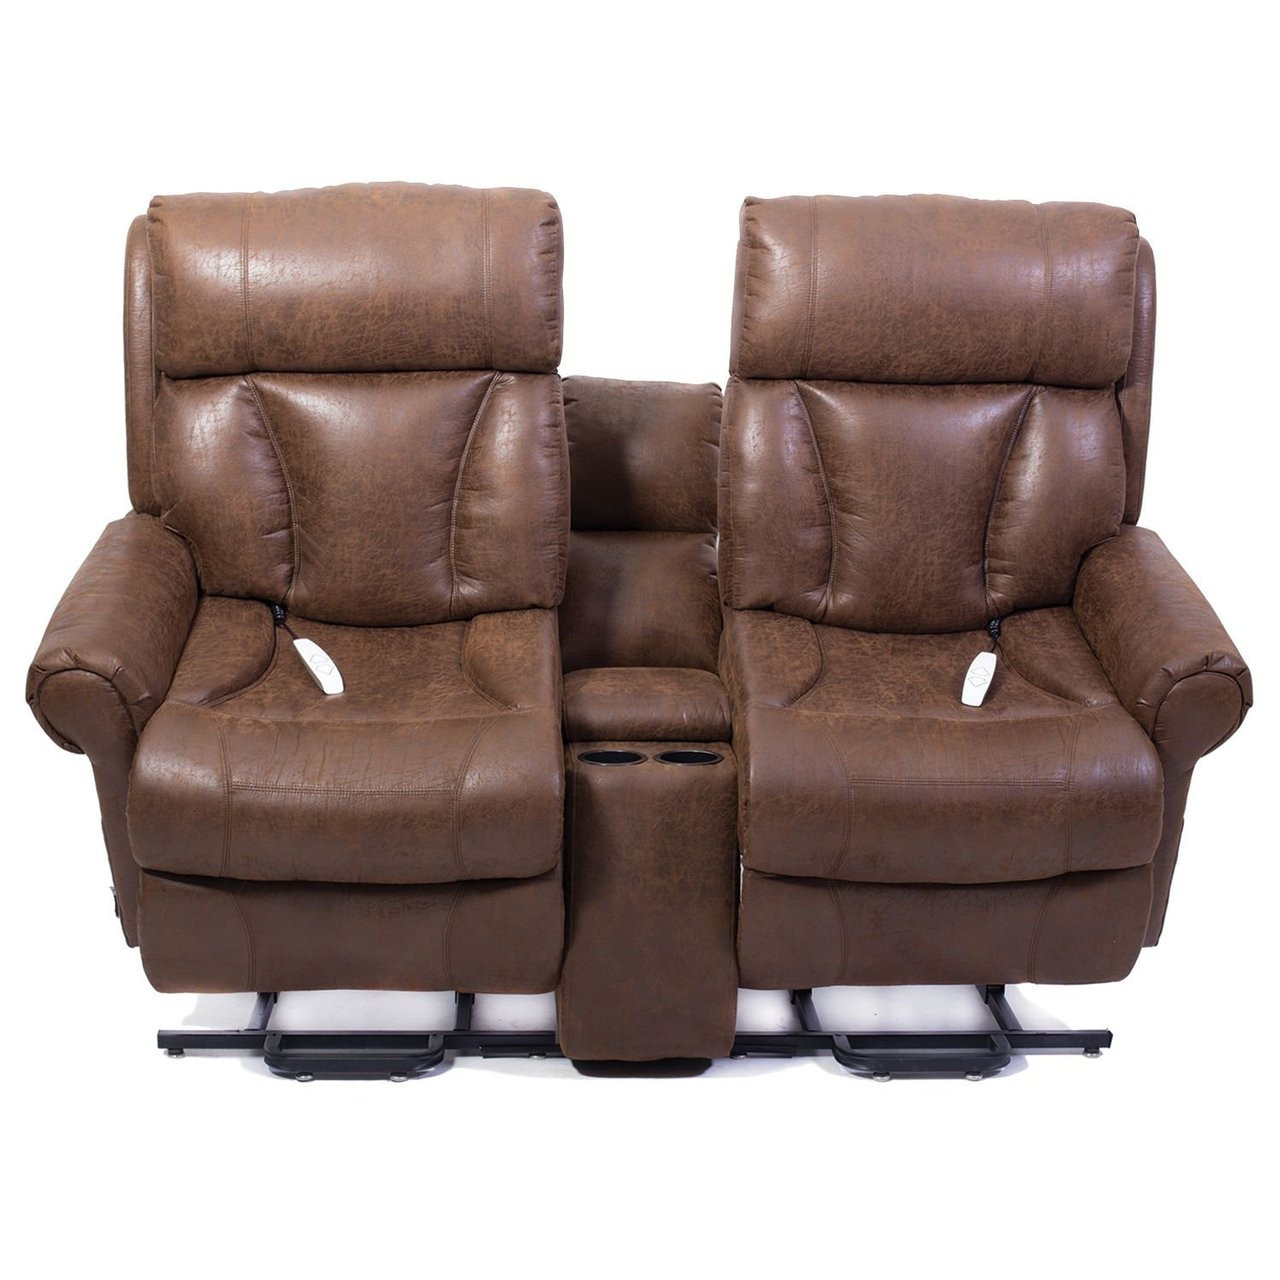 Companion Loveseat Recliner by Mega Motion|loveseats, recliner ...